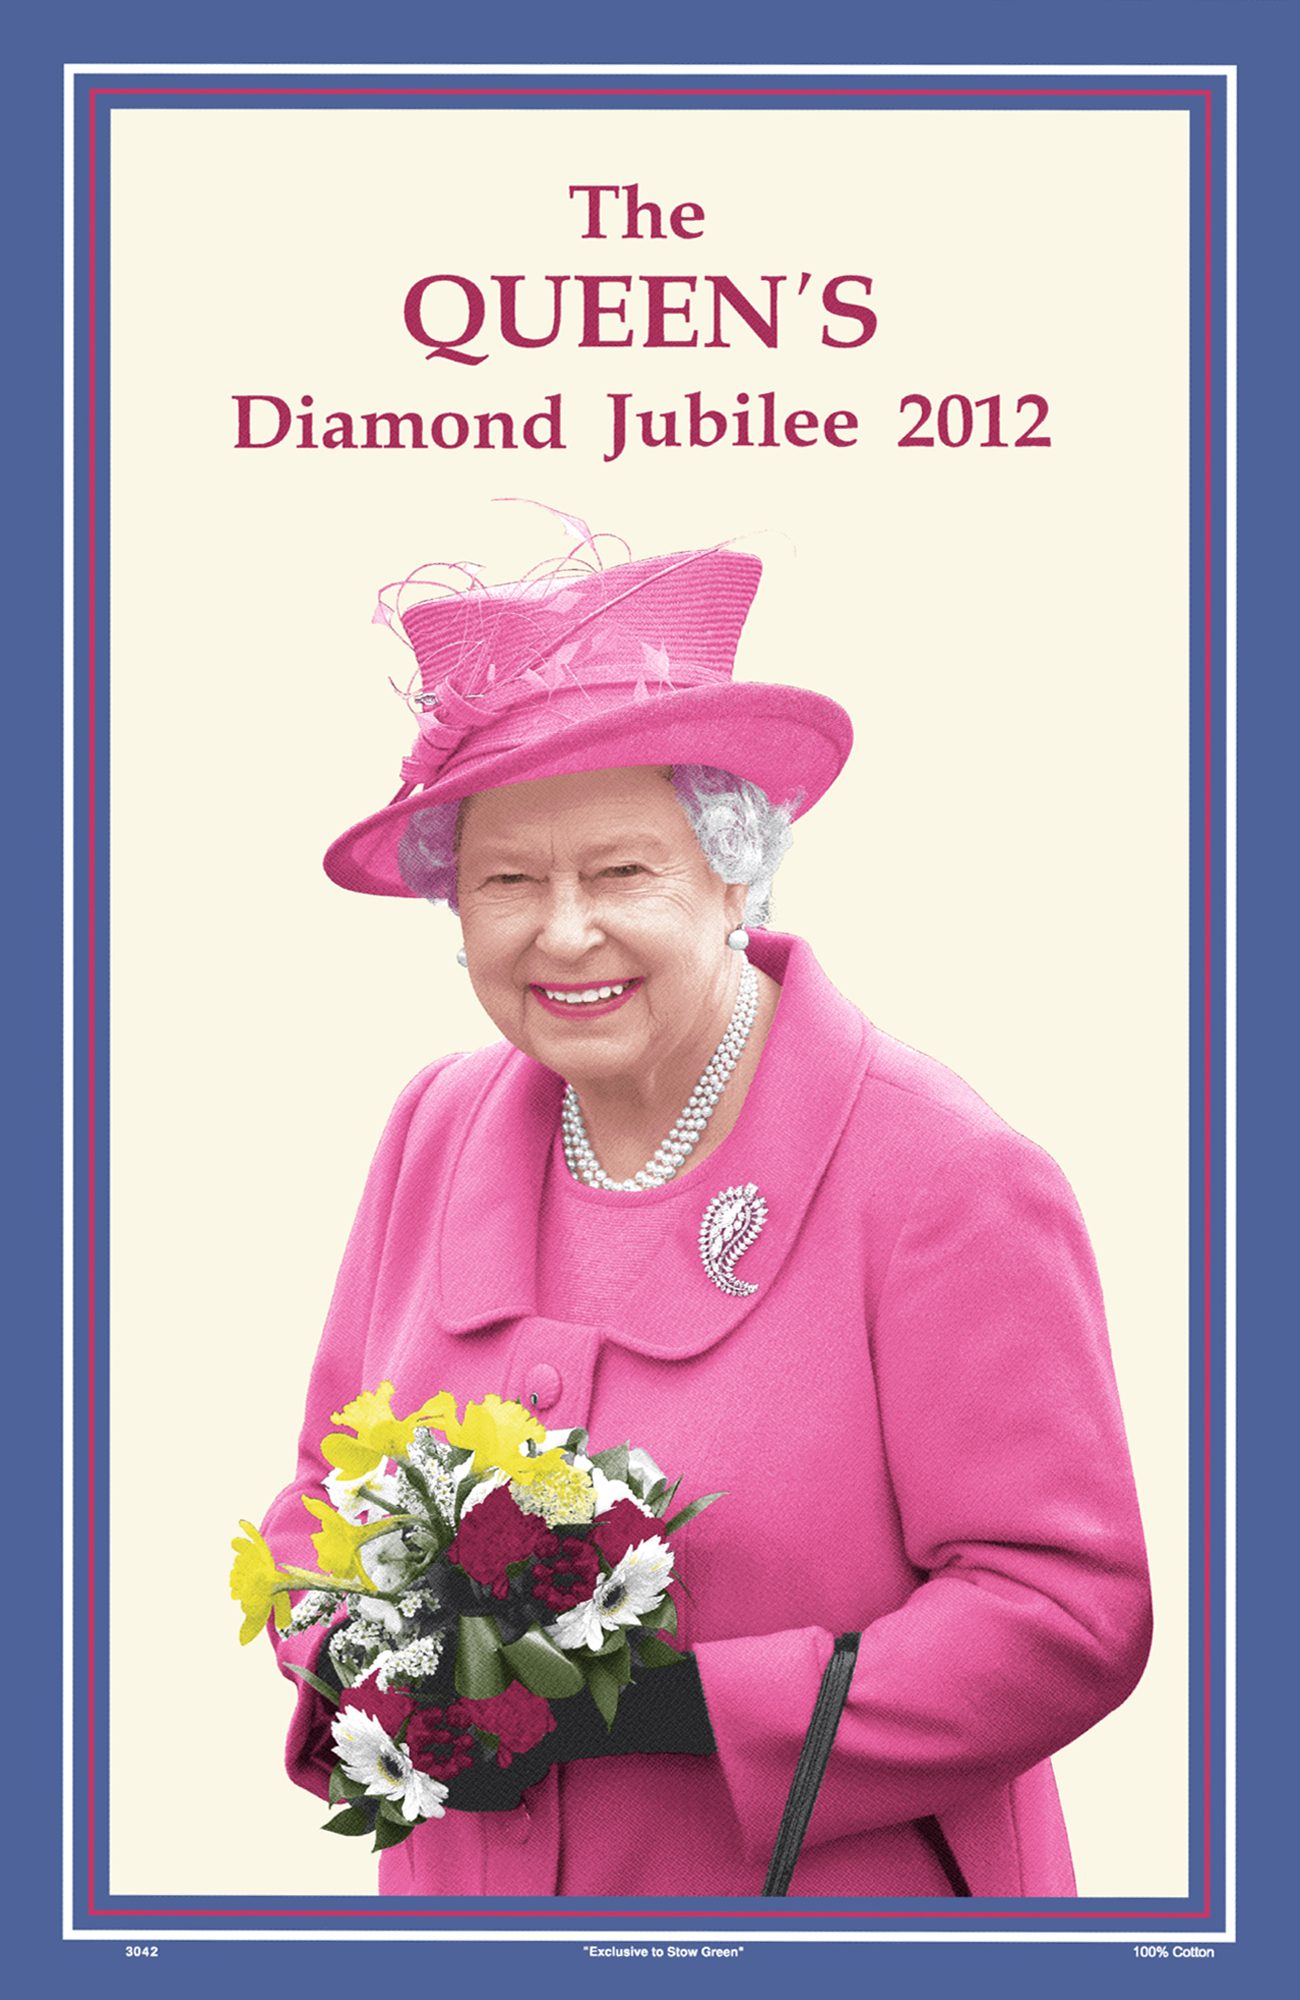 The Queen's Diamond Jubilee Cotton Tea Towel 2012